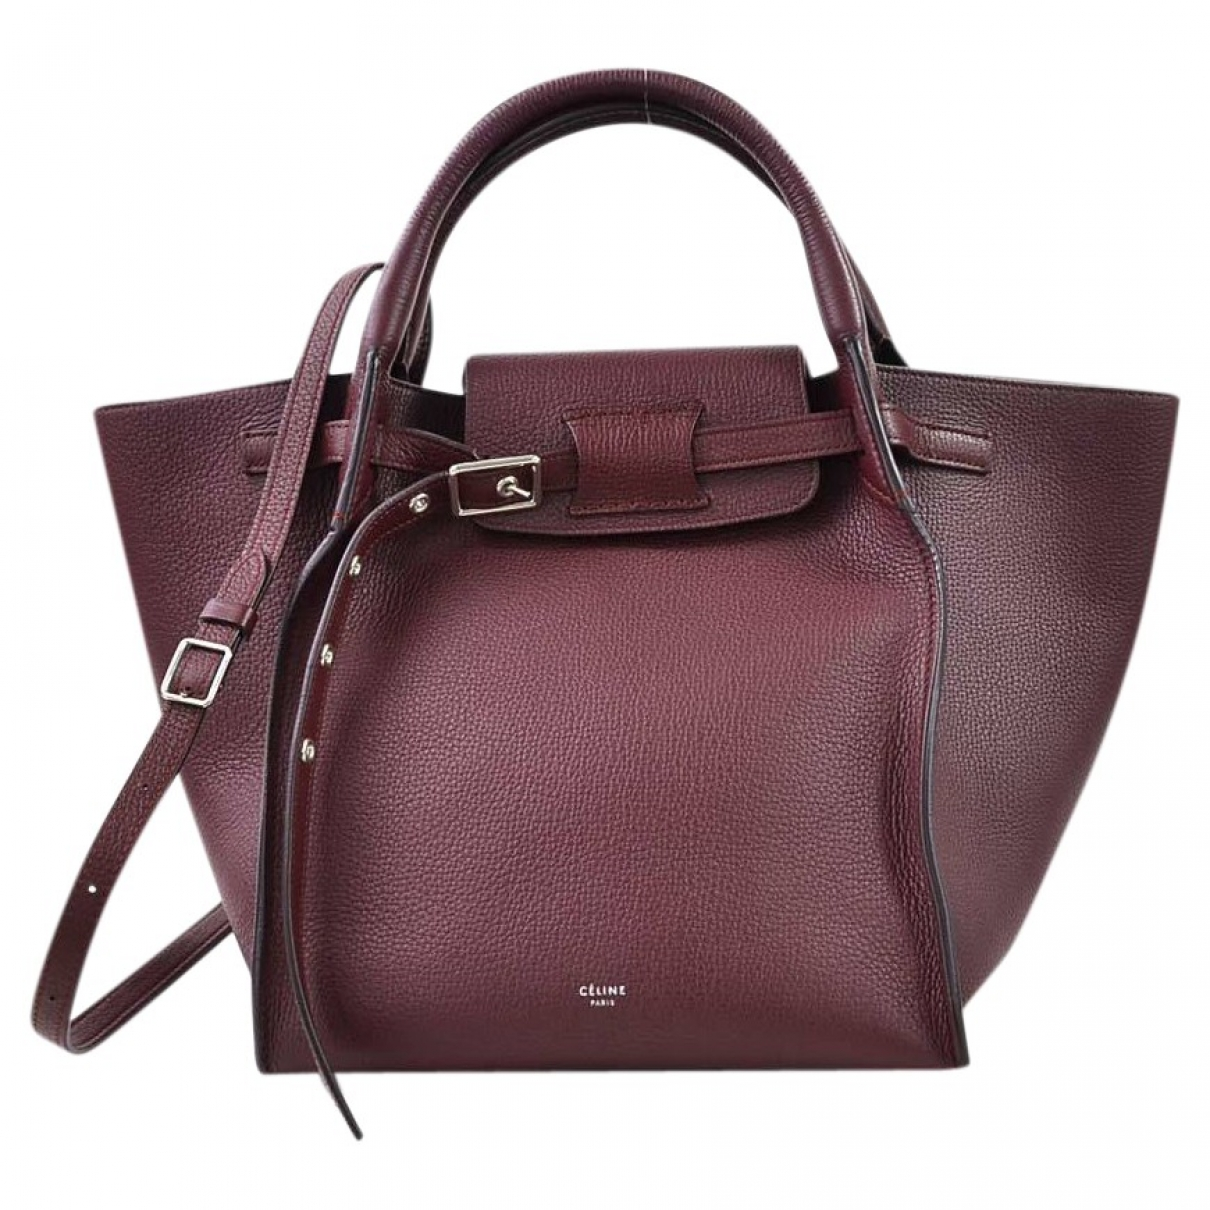 Bolso  Big Bag de Cuero Celine